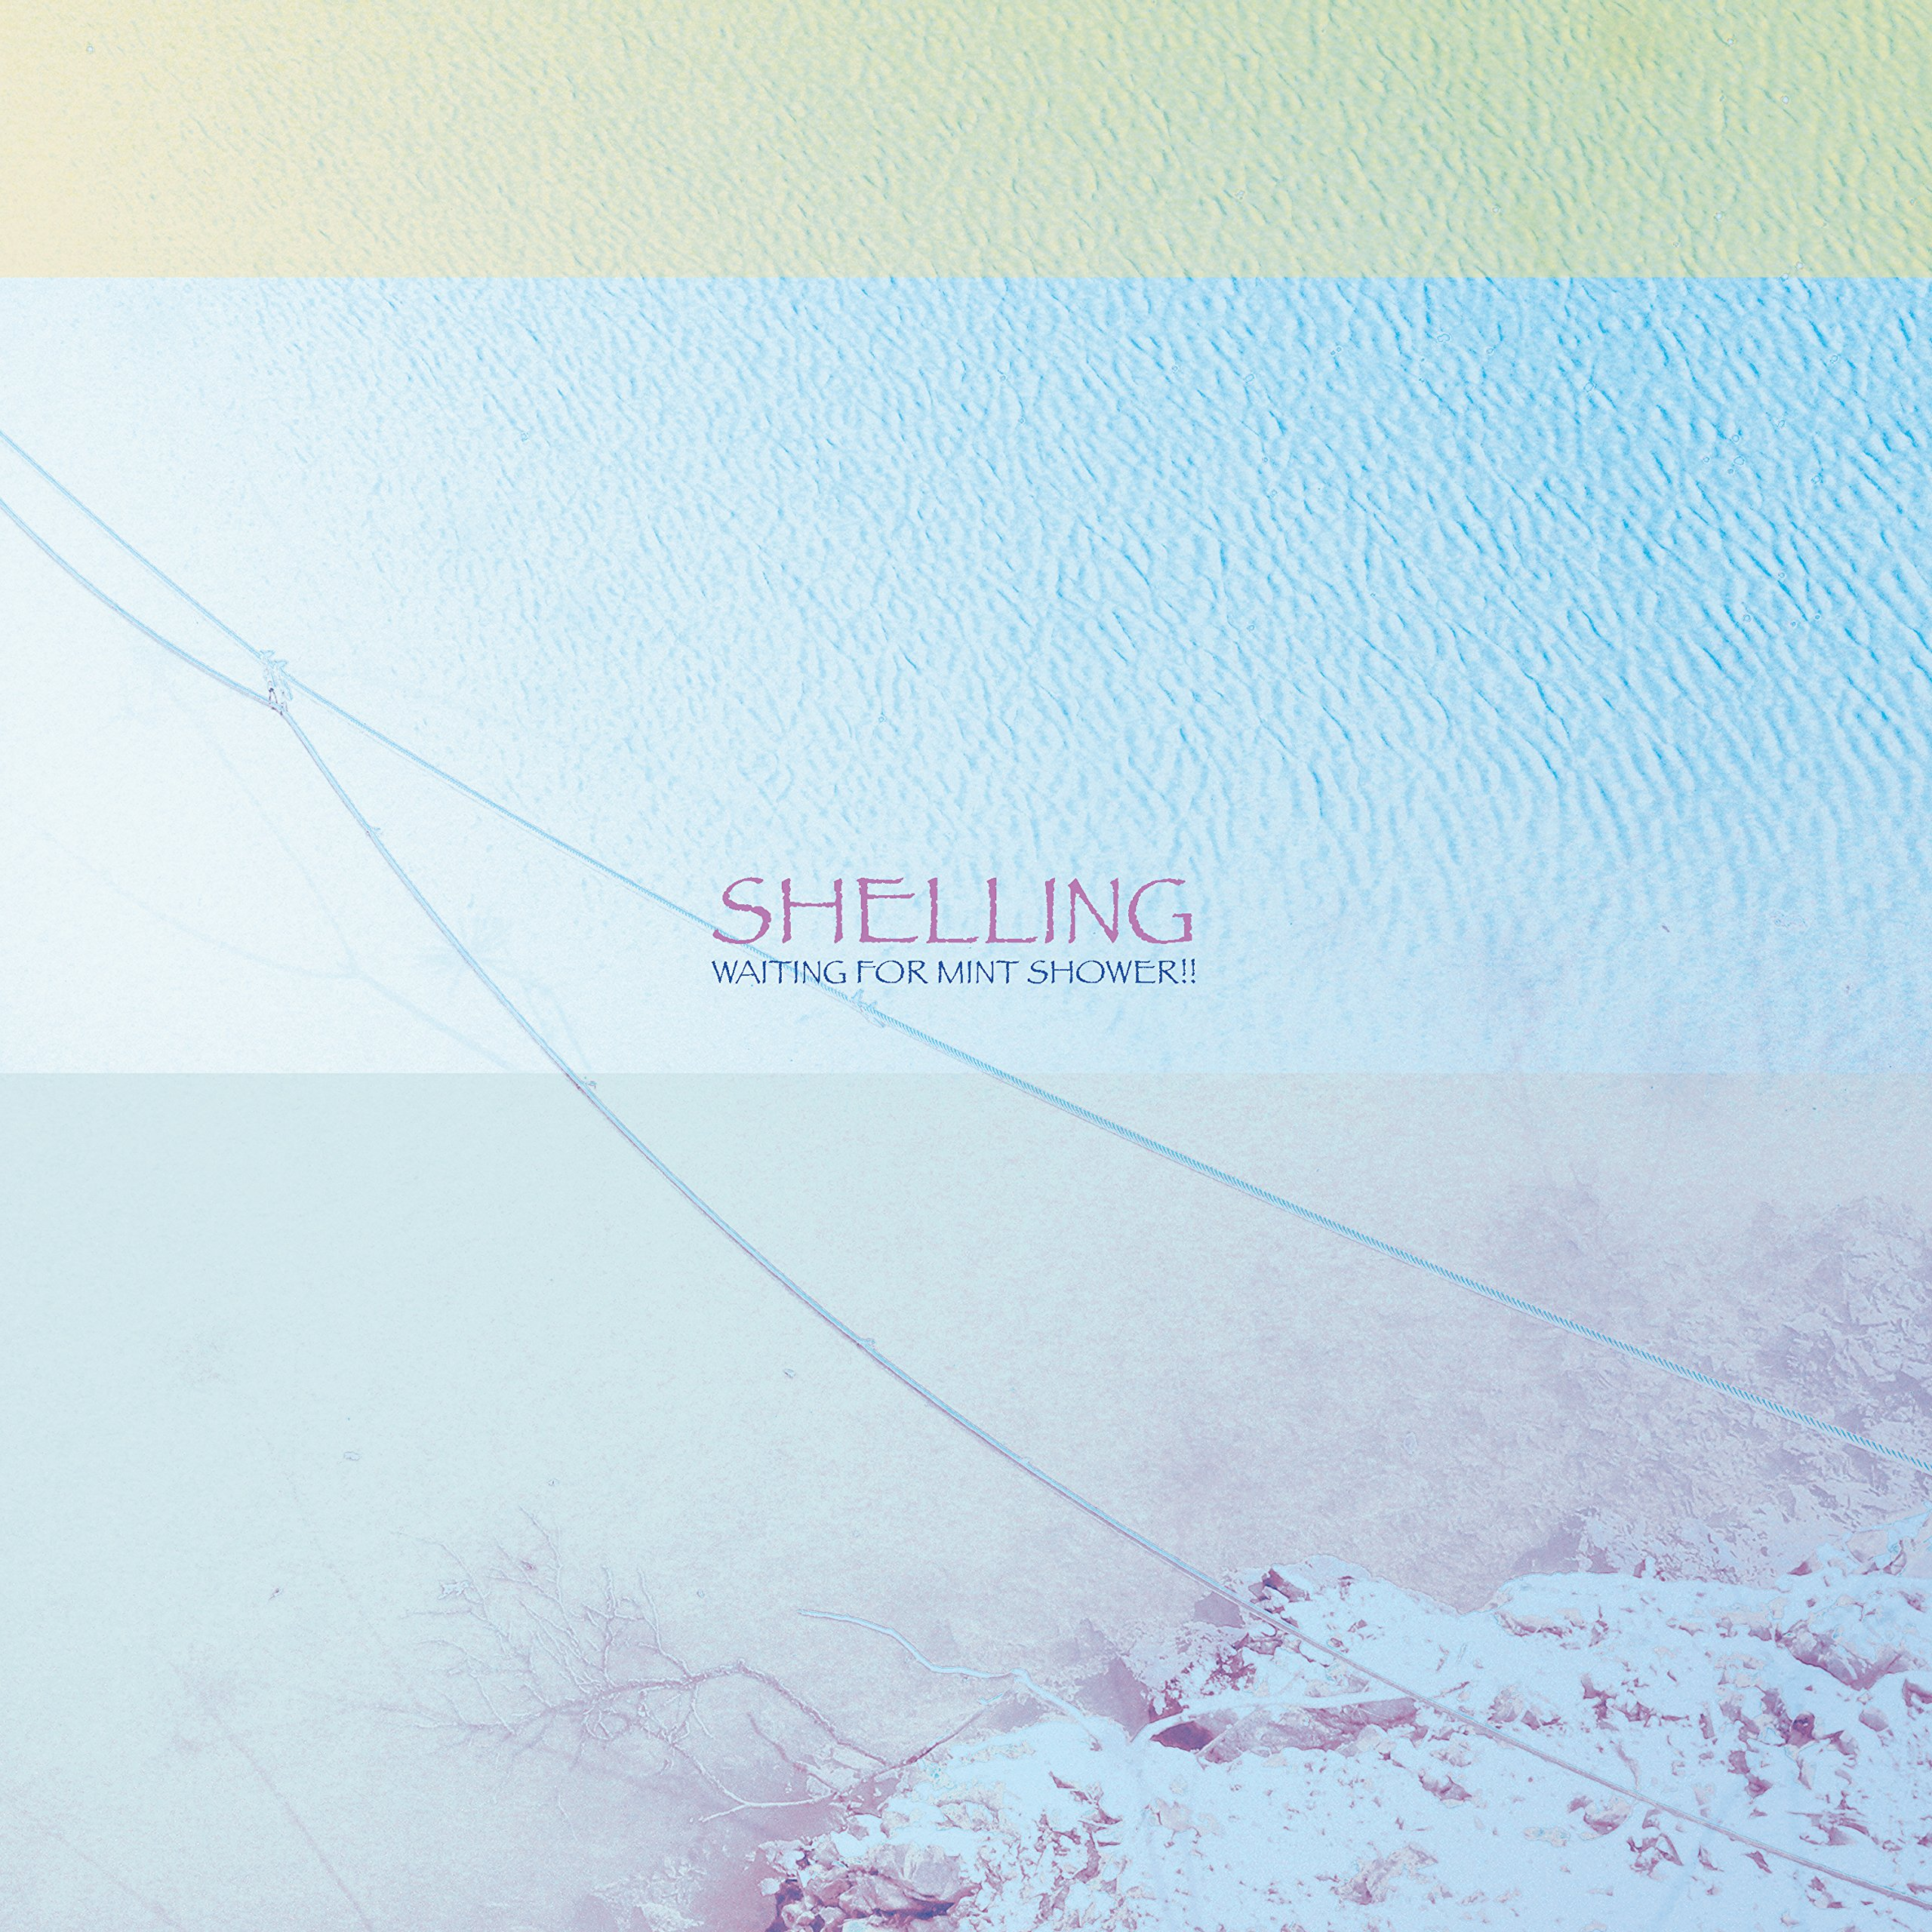 Shelling - Waiting For Mint Shower!! (2017) [WEB FLAC] Download